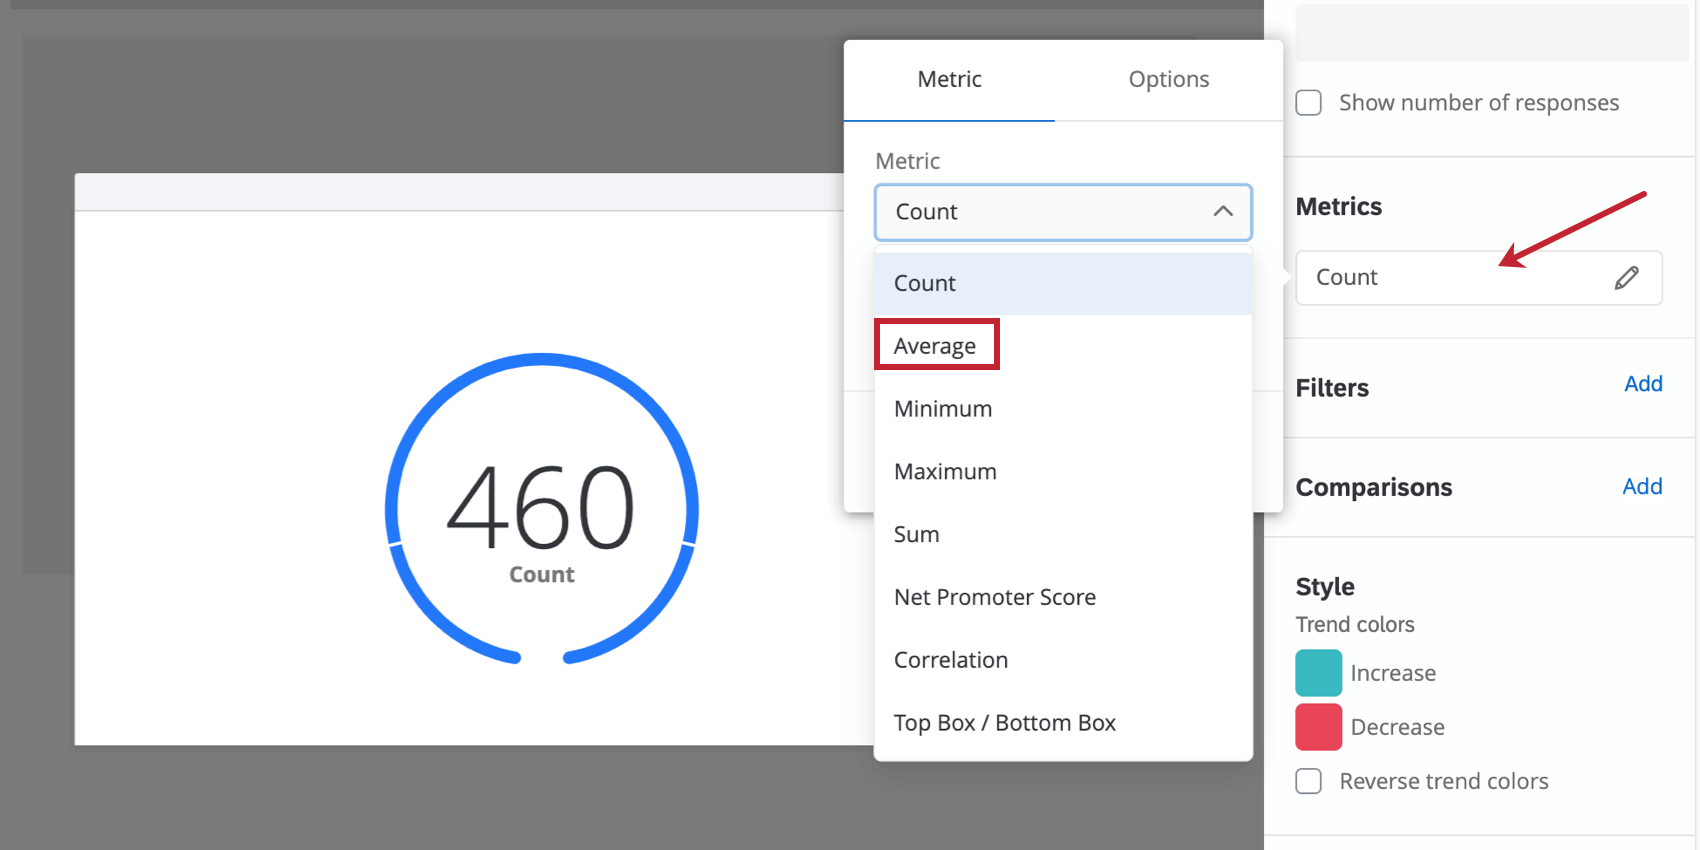 Clicking count opens menus to the left where the average can be configured